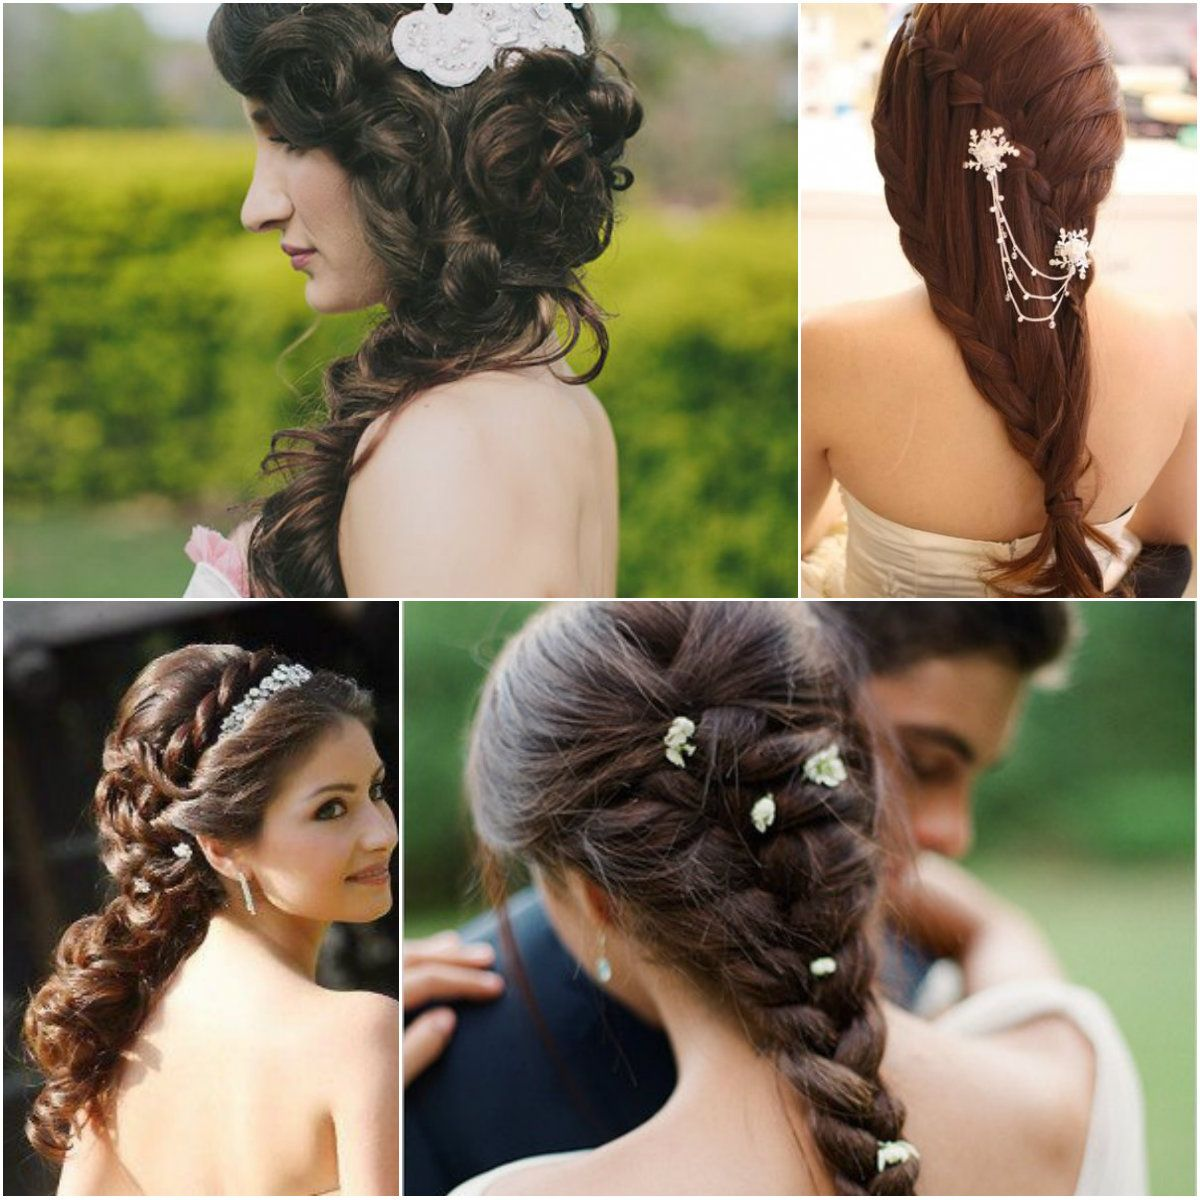 Black Braided Wedding Hairstyles: Stylish #Braids Hairstyles For Black Women #bridesmaid